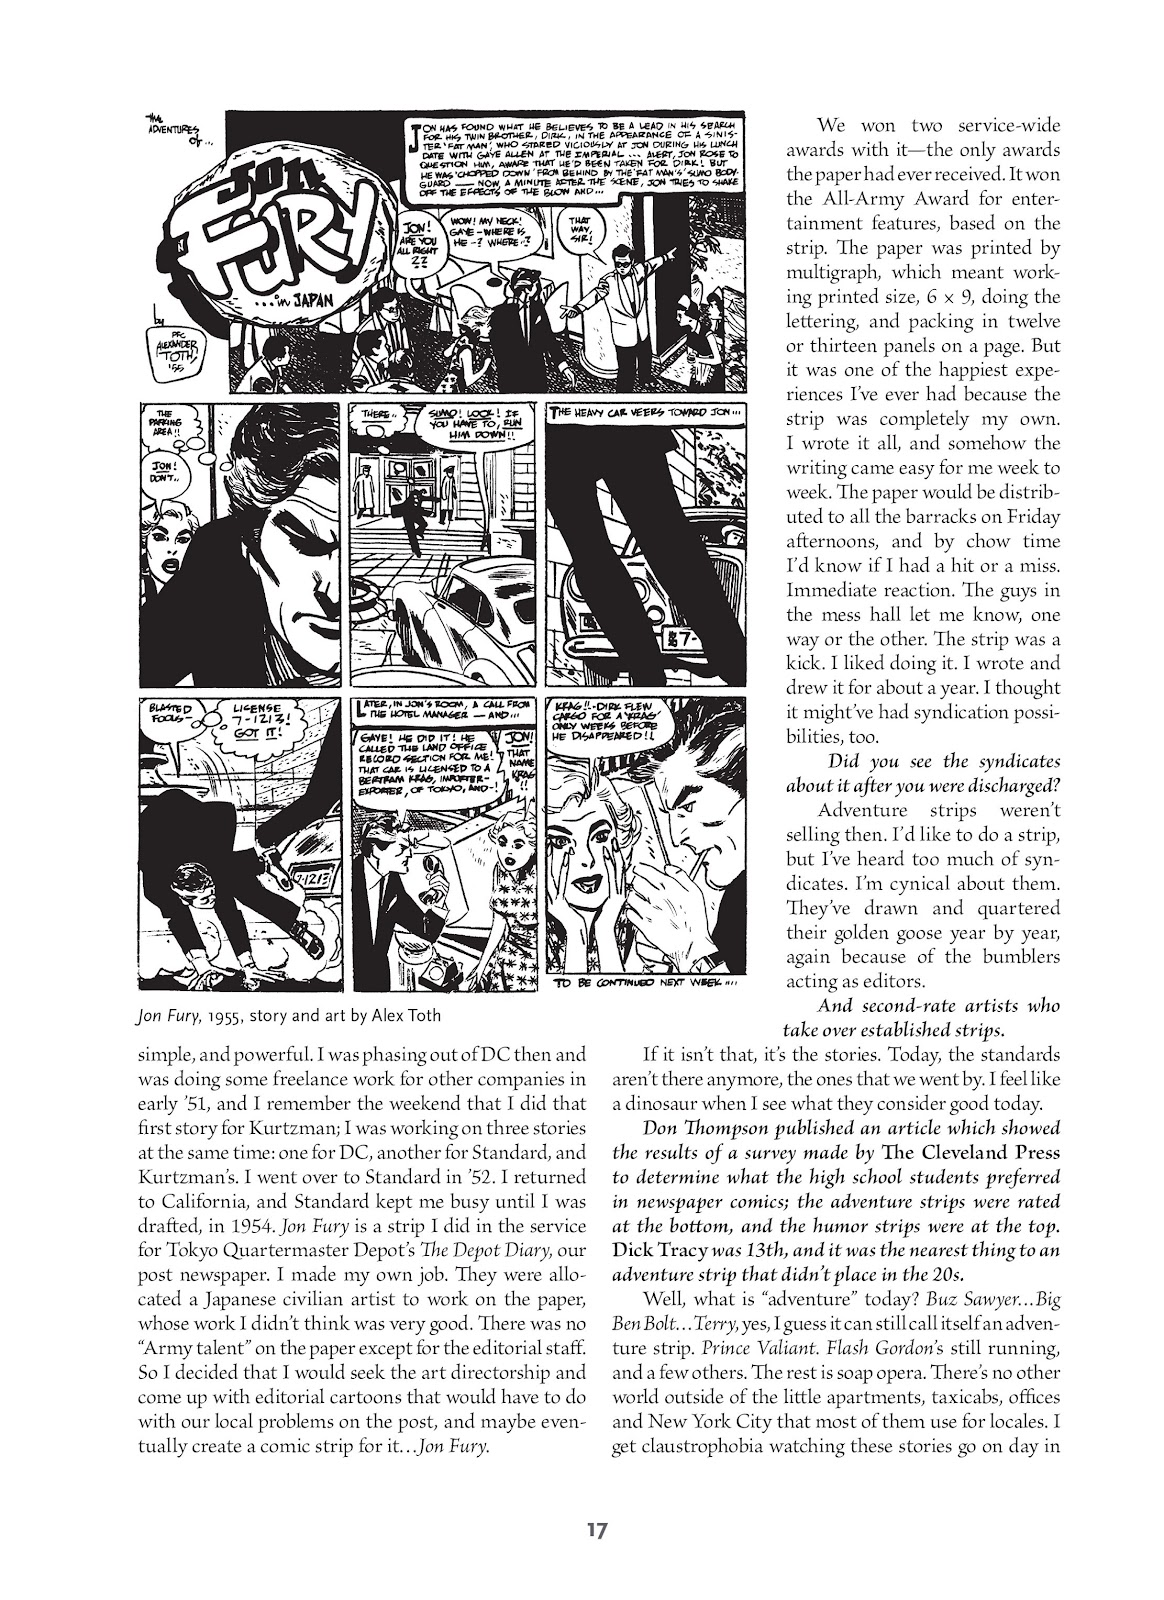 Read online Setting the Standard: Comics by Alex Toth 1952-1954 comic -  Issue # TPB (Part 1) - 16